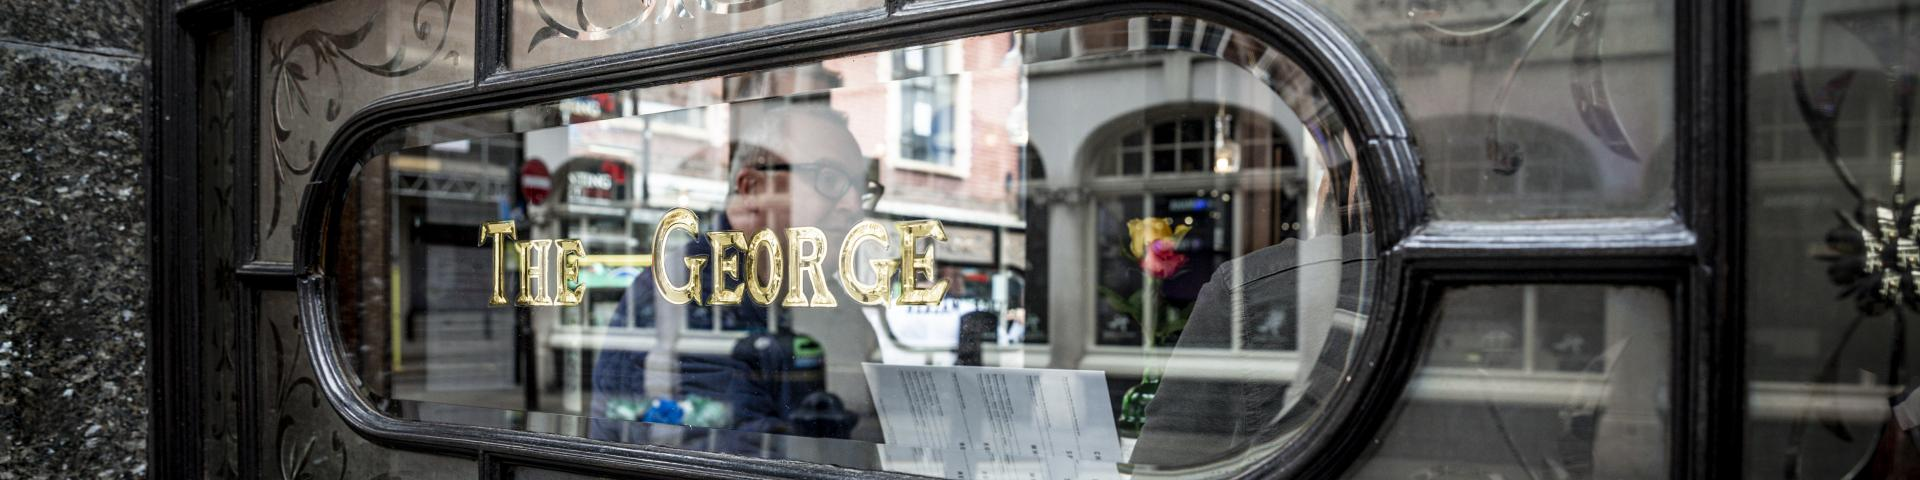 George, Soho, London